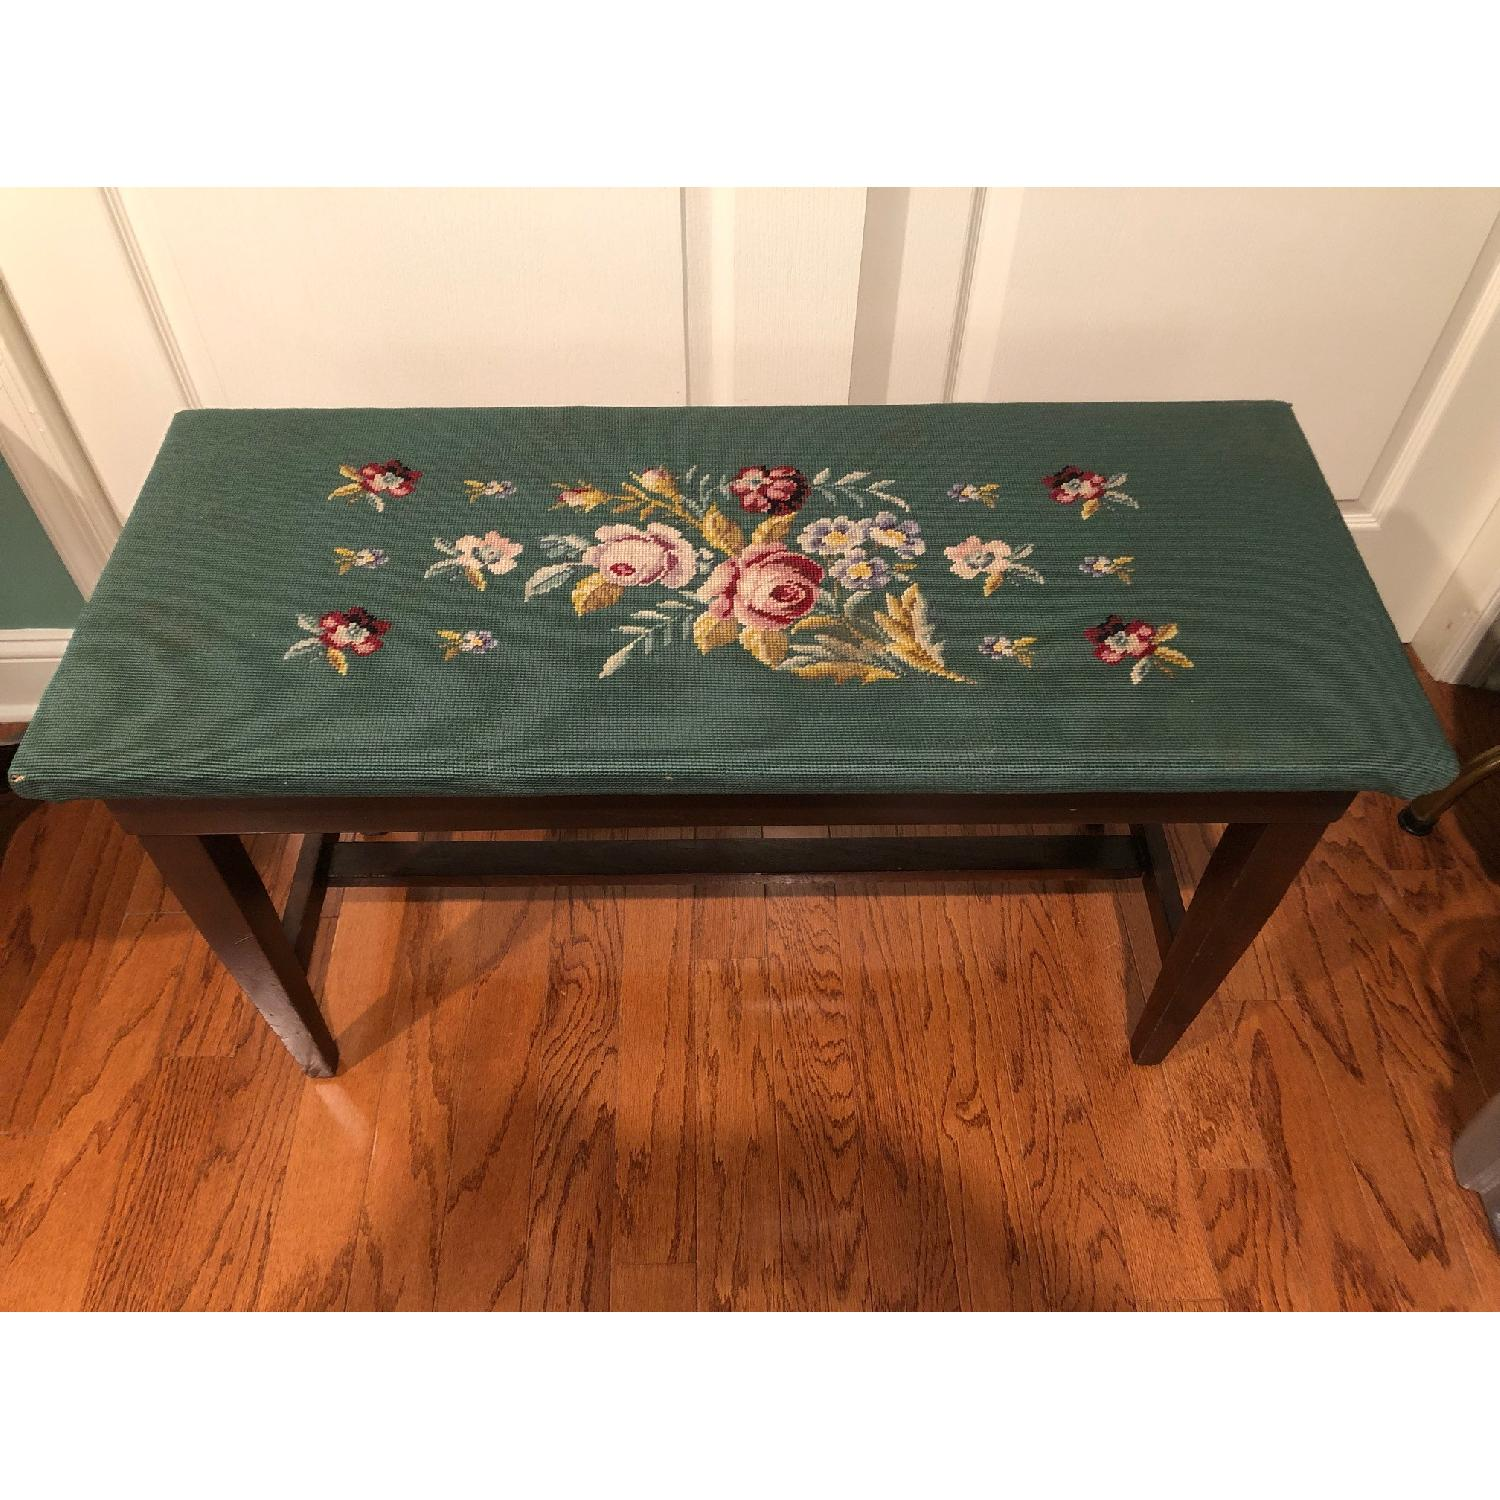 Antique Embroidered Floral Piano Bench-0